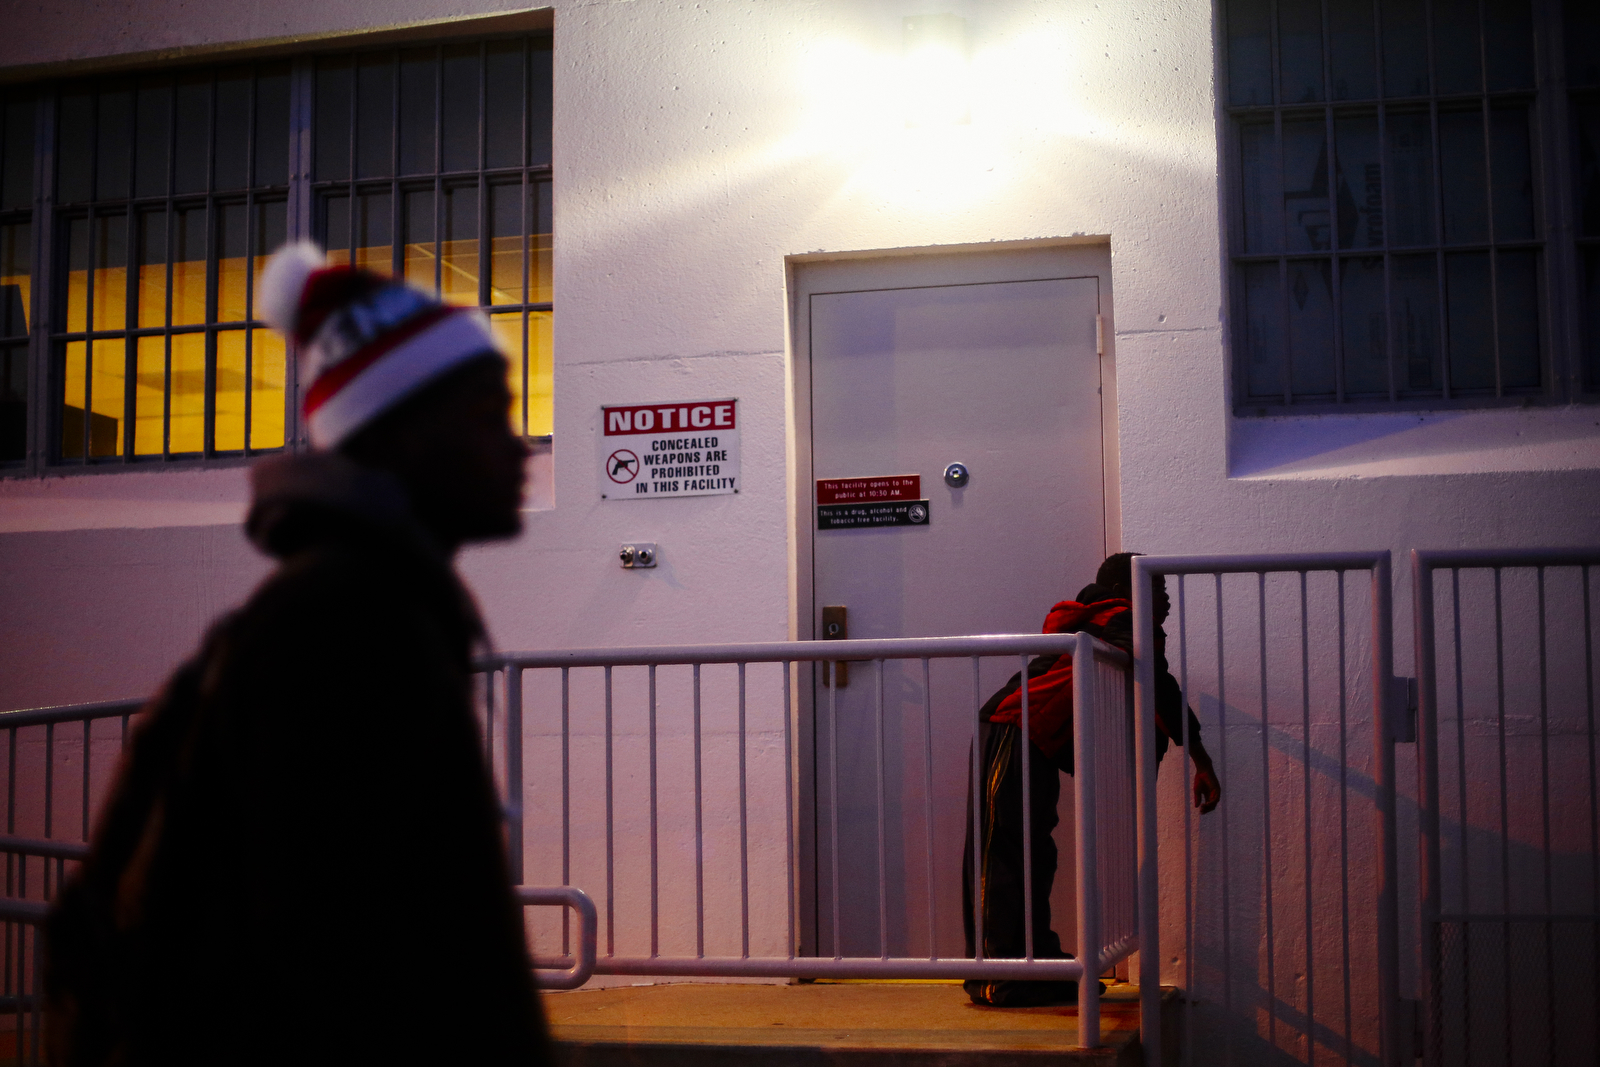 Lorenzo Estes, left, and Noah Cooley wait for Glen ward at the back of the Armory in Columbia, Mo, where they have drum line practice.